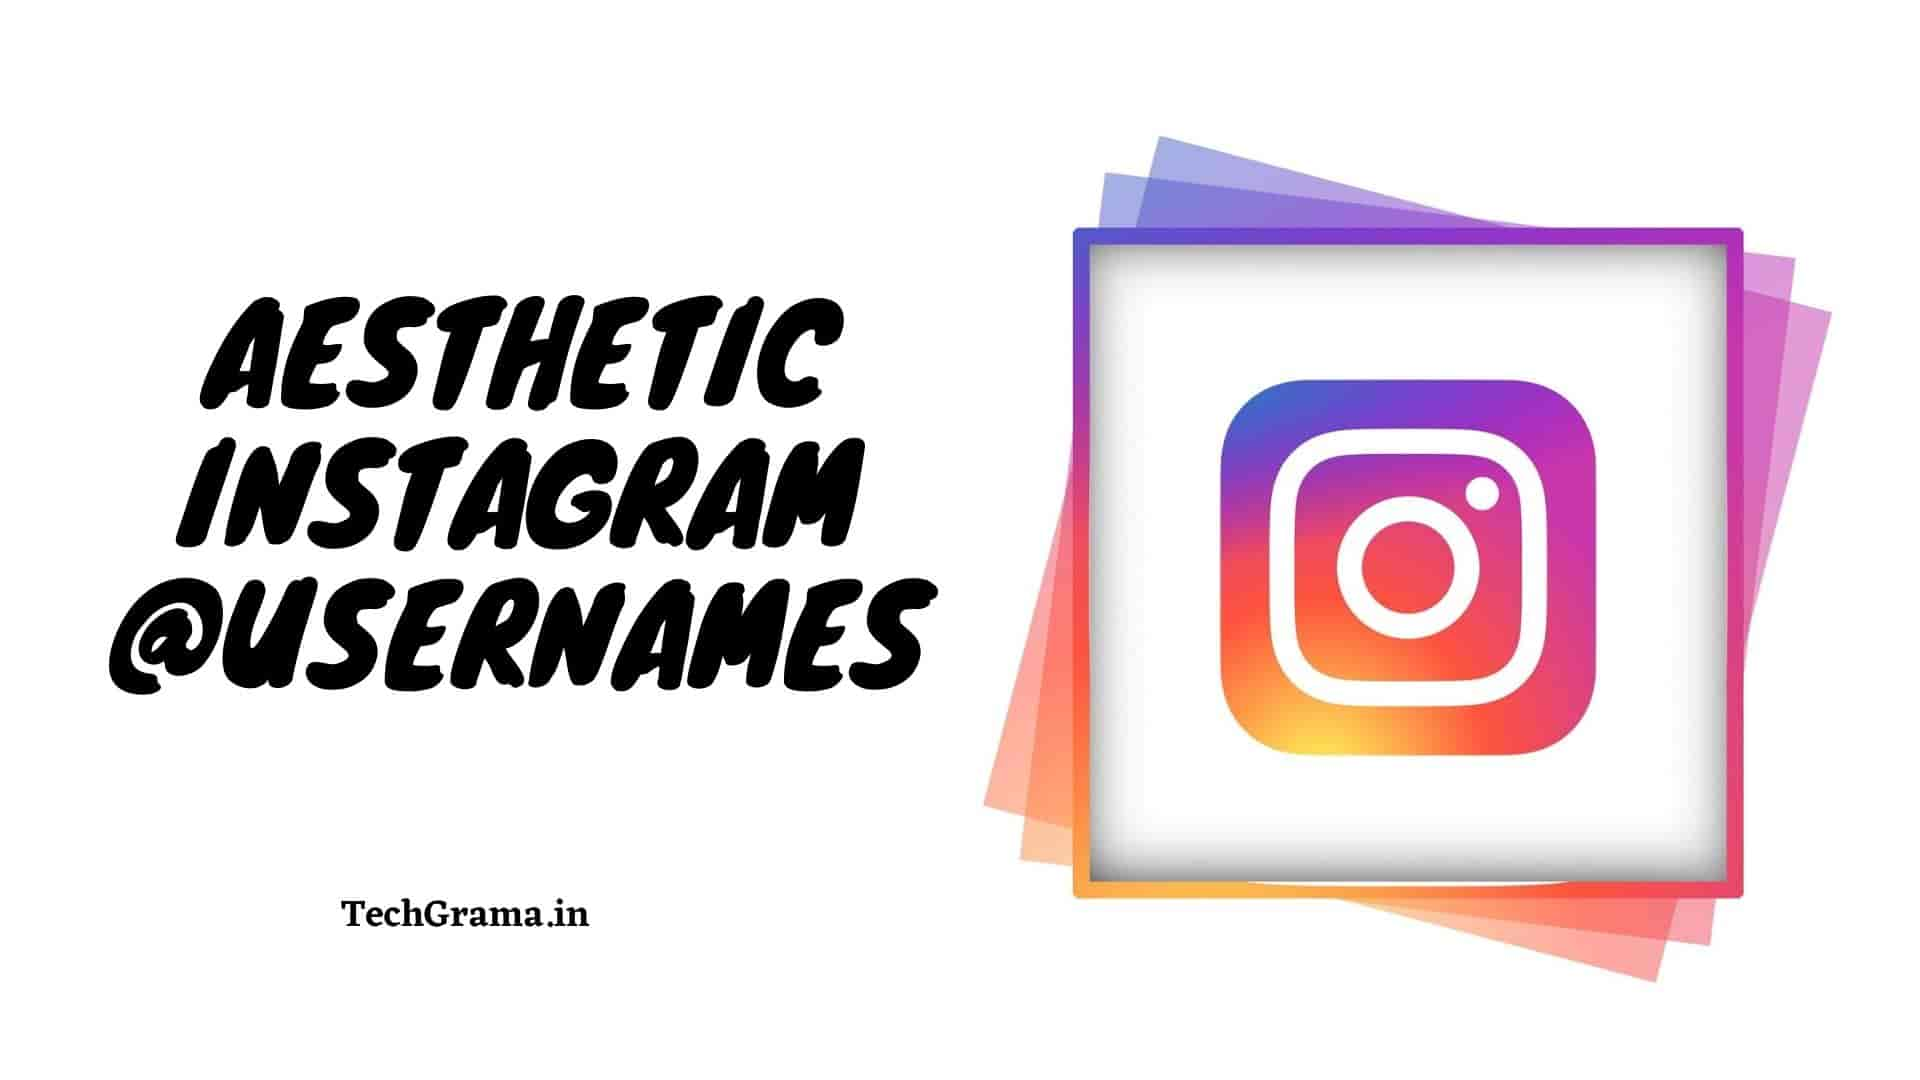 Aesthetic Instagram Usernames, Aesthetic Usernames Ideas, Aesthetic Usernames For Boys & Girls, Soft Aesthetic Usernames, Dark Aesthetic Usernames, Aesthetic Names For Instagram, Cute Aesthetic Usernames For Instagram, Aesthetic IG Username Ideas